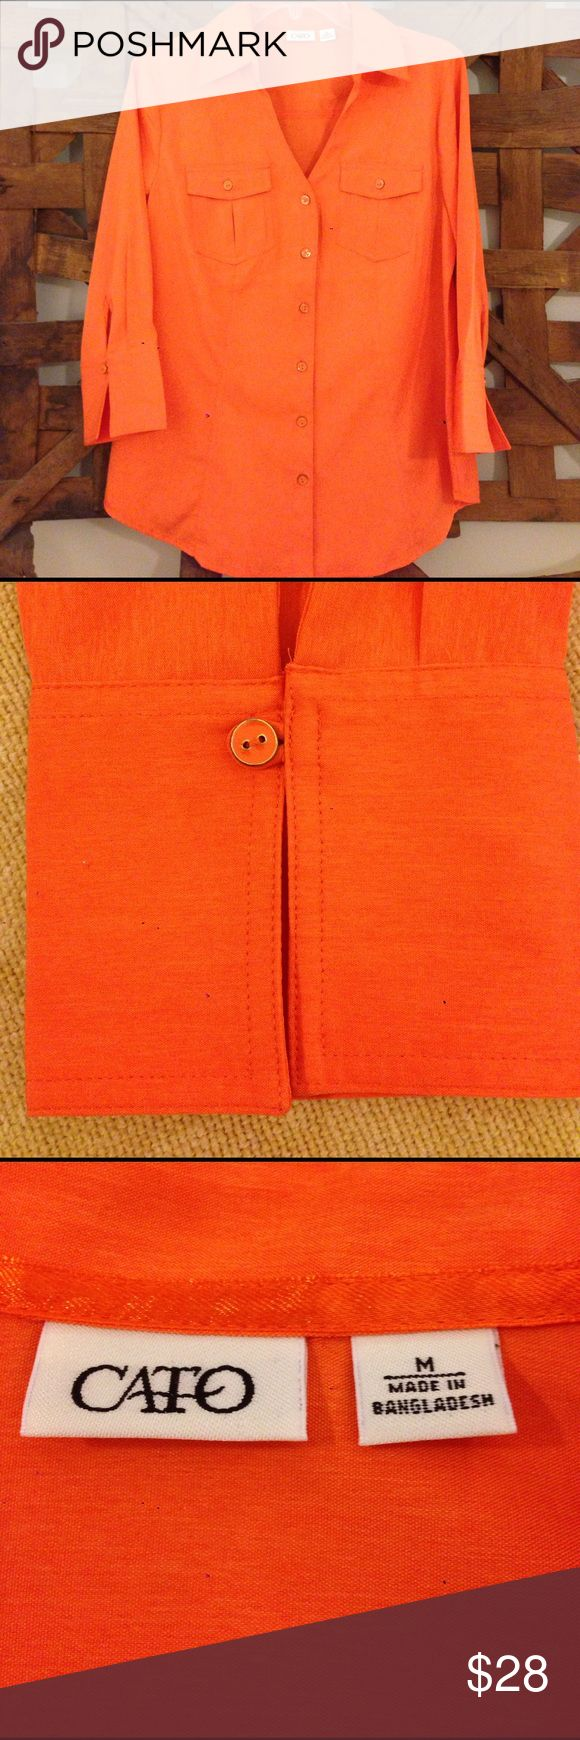 Cato Spring Orange Blouse New Blouse from Cato, bright orange, size M, 3/4 sleeves, front pockets, great looking enamel buttons Cato Tops Blouses